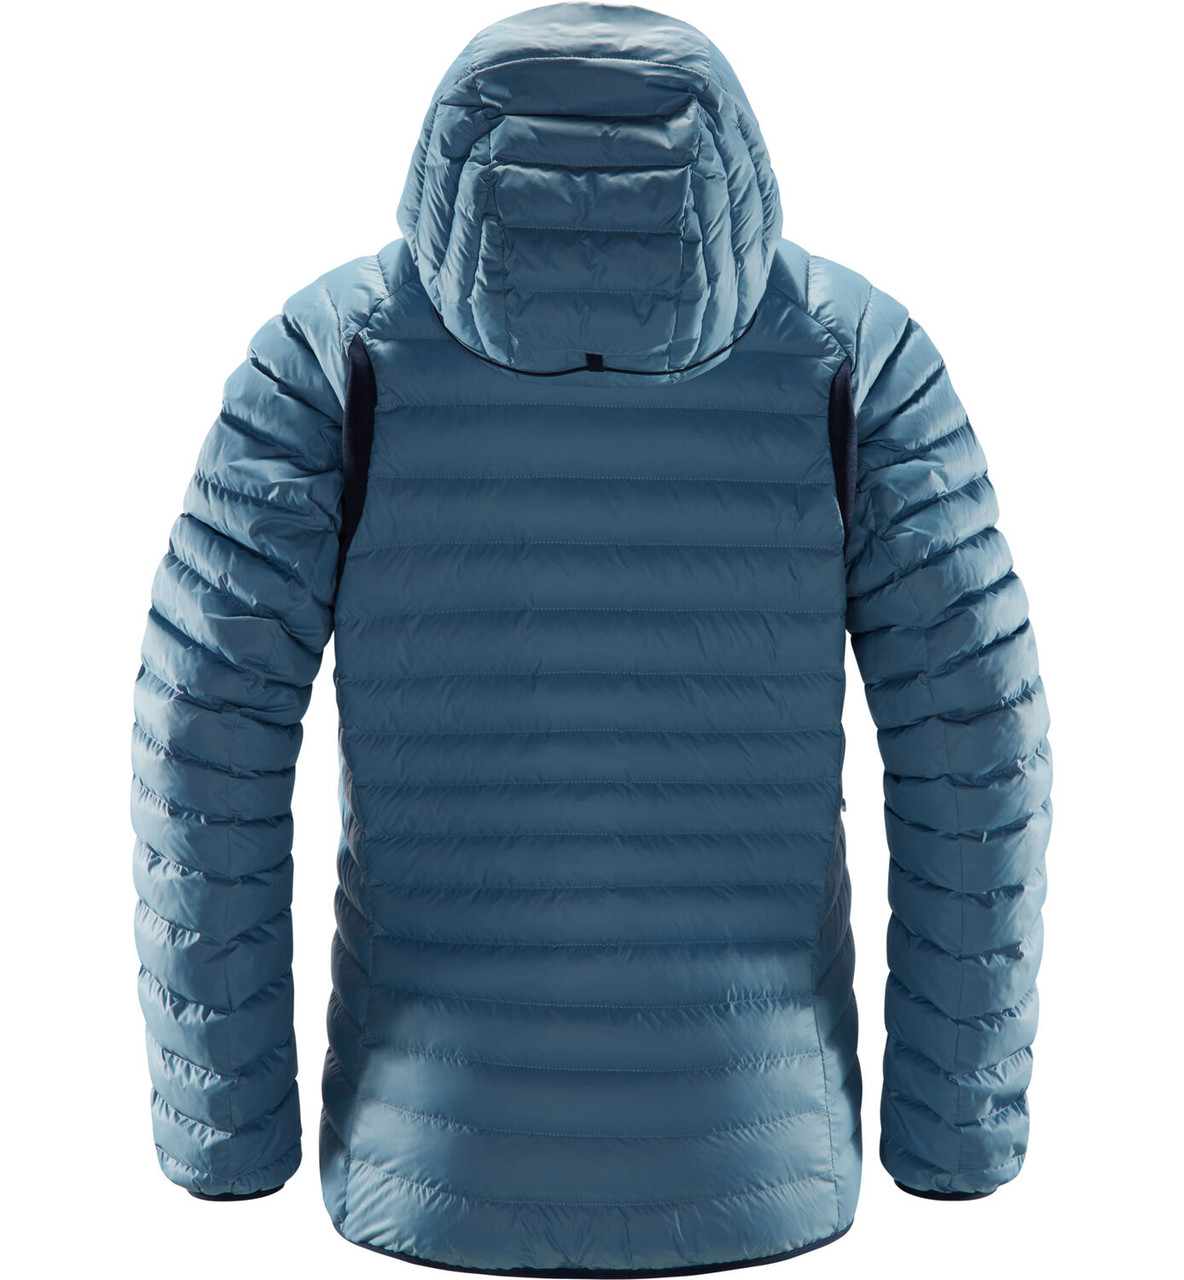 haglofs essens mimic hood women silver blue / dense blue | warm women's jacket